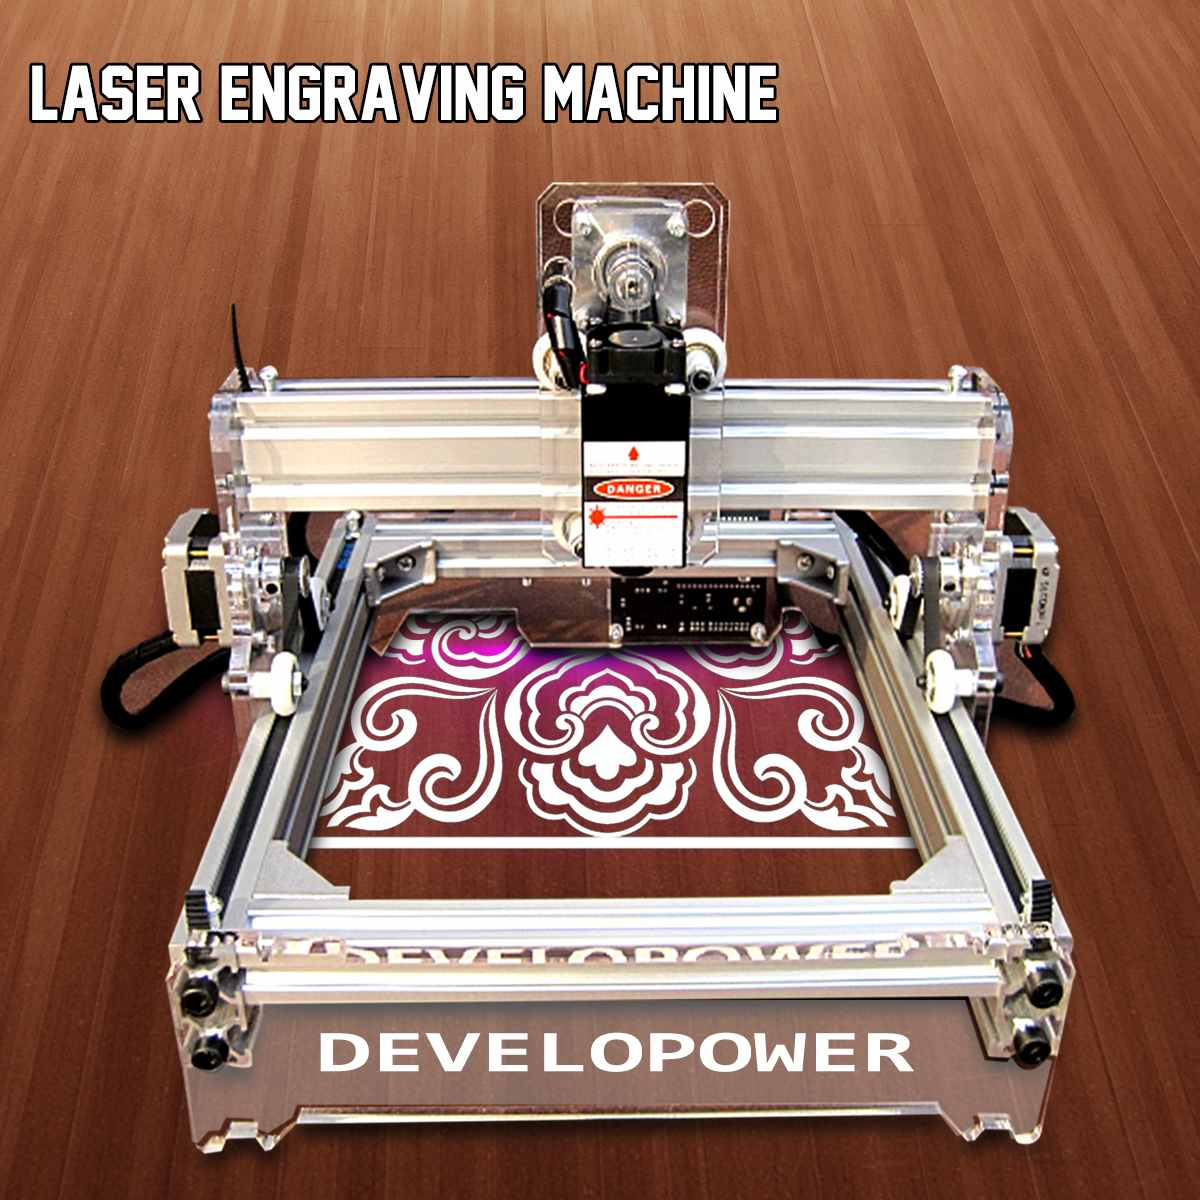 17x20cm 2000mW Desktop Engraving Printer DIY Desktop Wood Cutter CNC Wood Router Laser Engraver Cutting Machine